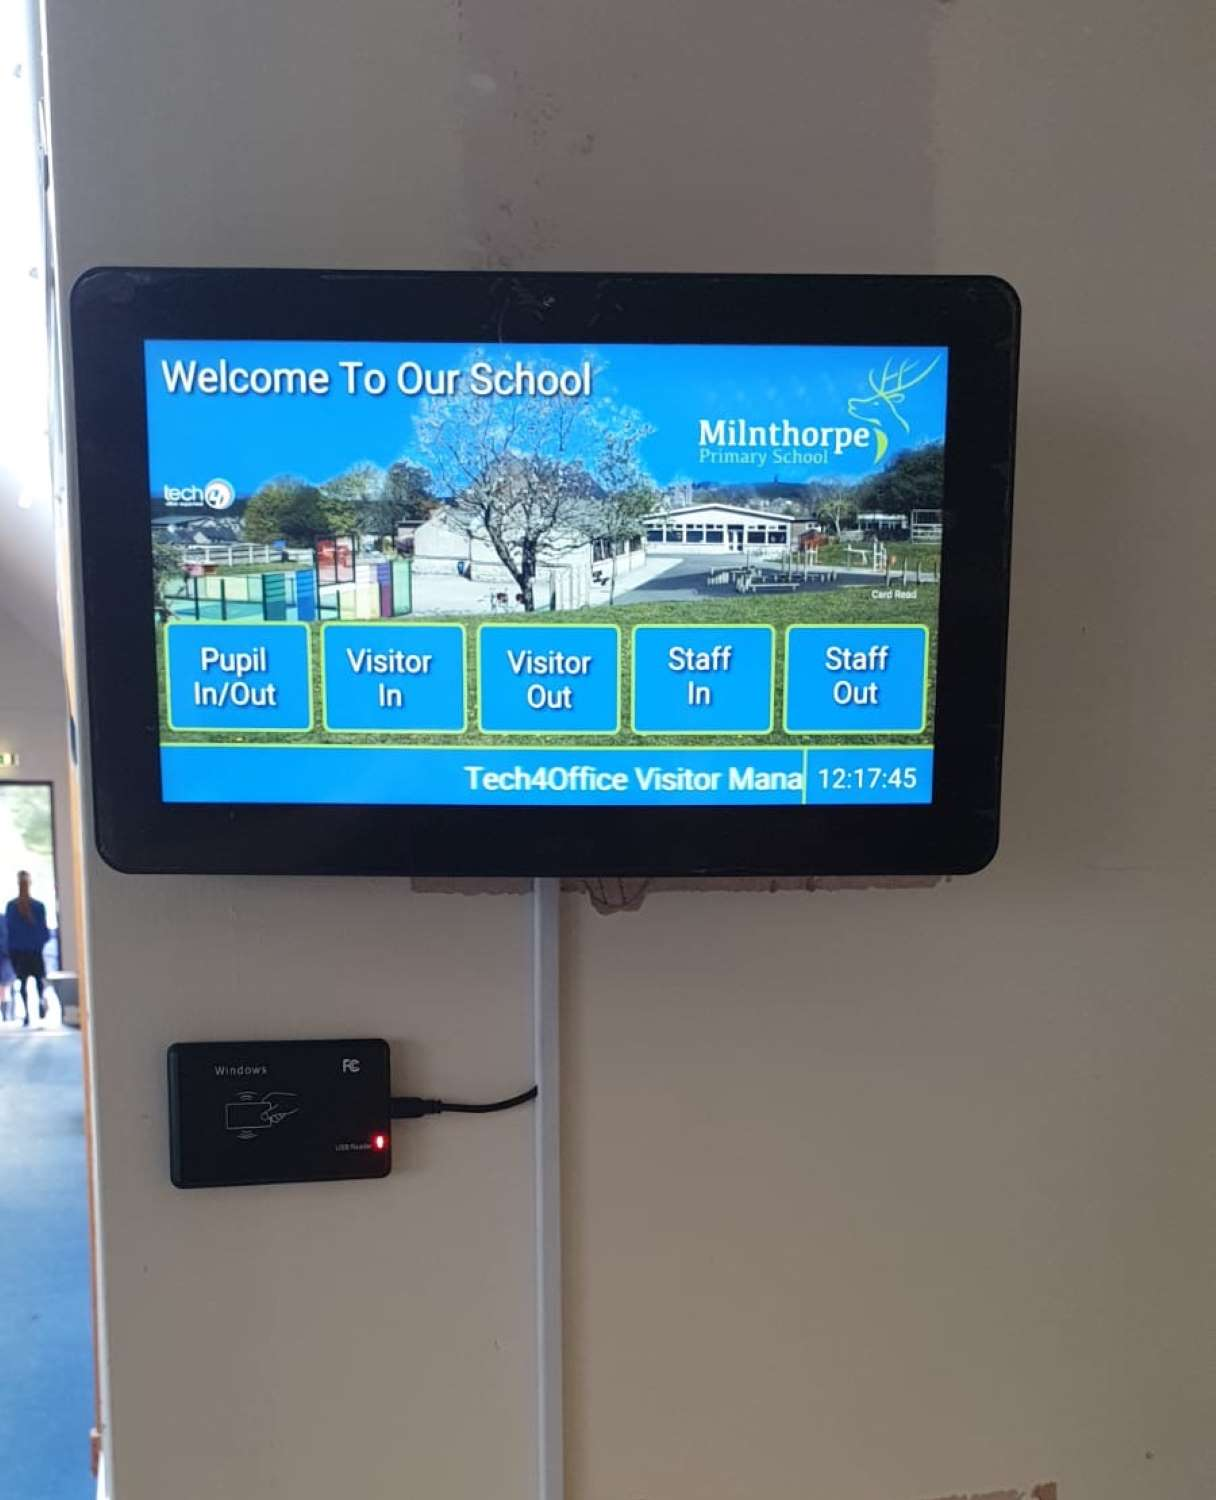 School Visitor Management Systems in Carlisle, Cumbria